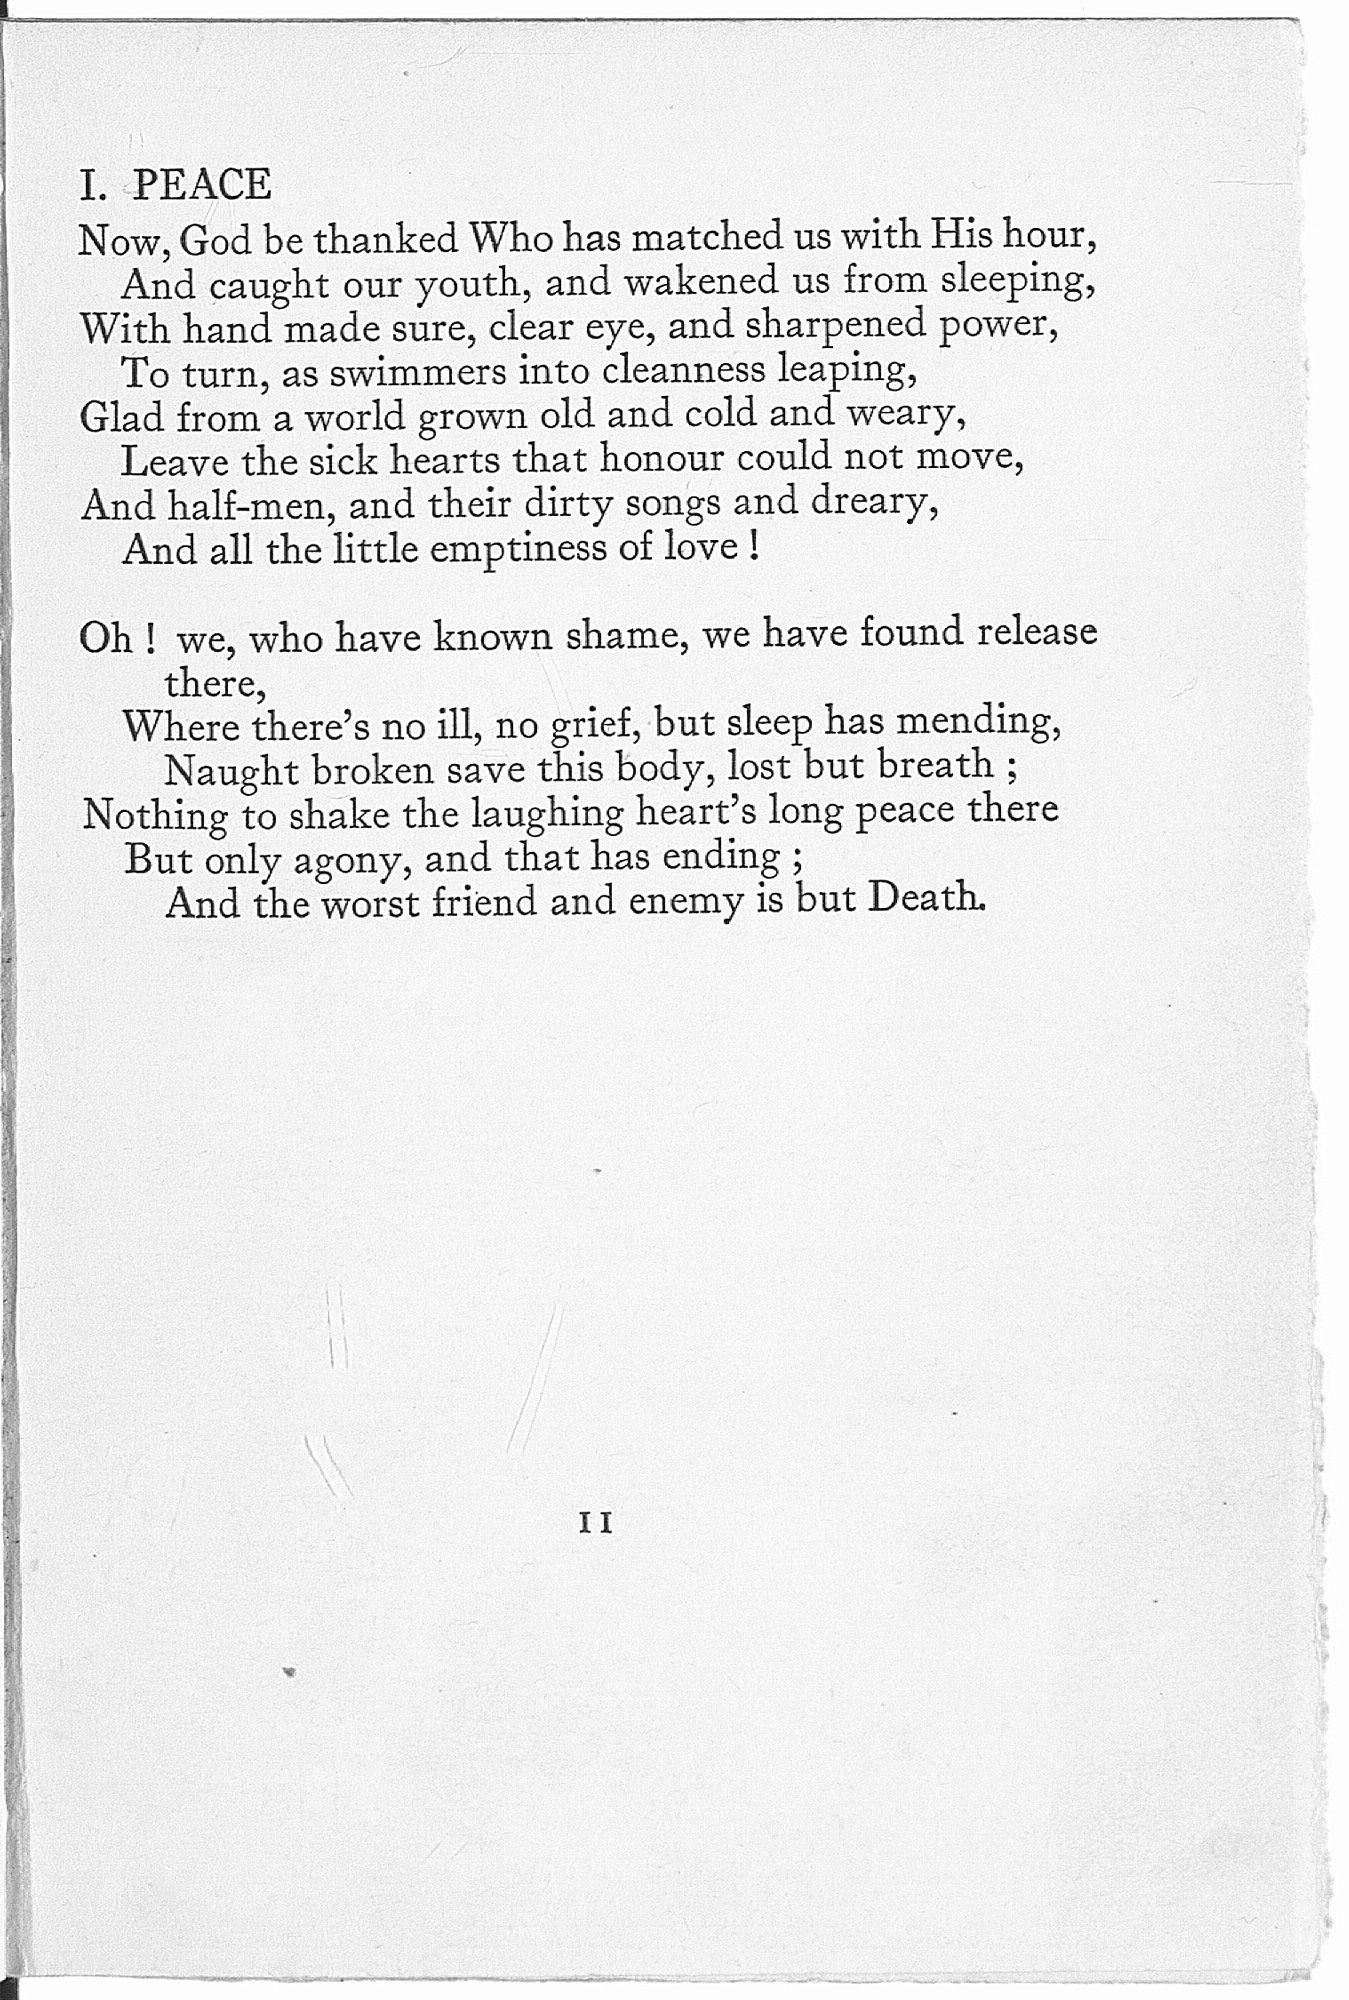 published after rupert brooke died and other poems are  published after rupert brooke died 1914 and other poems are classic examples of war poetry